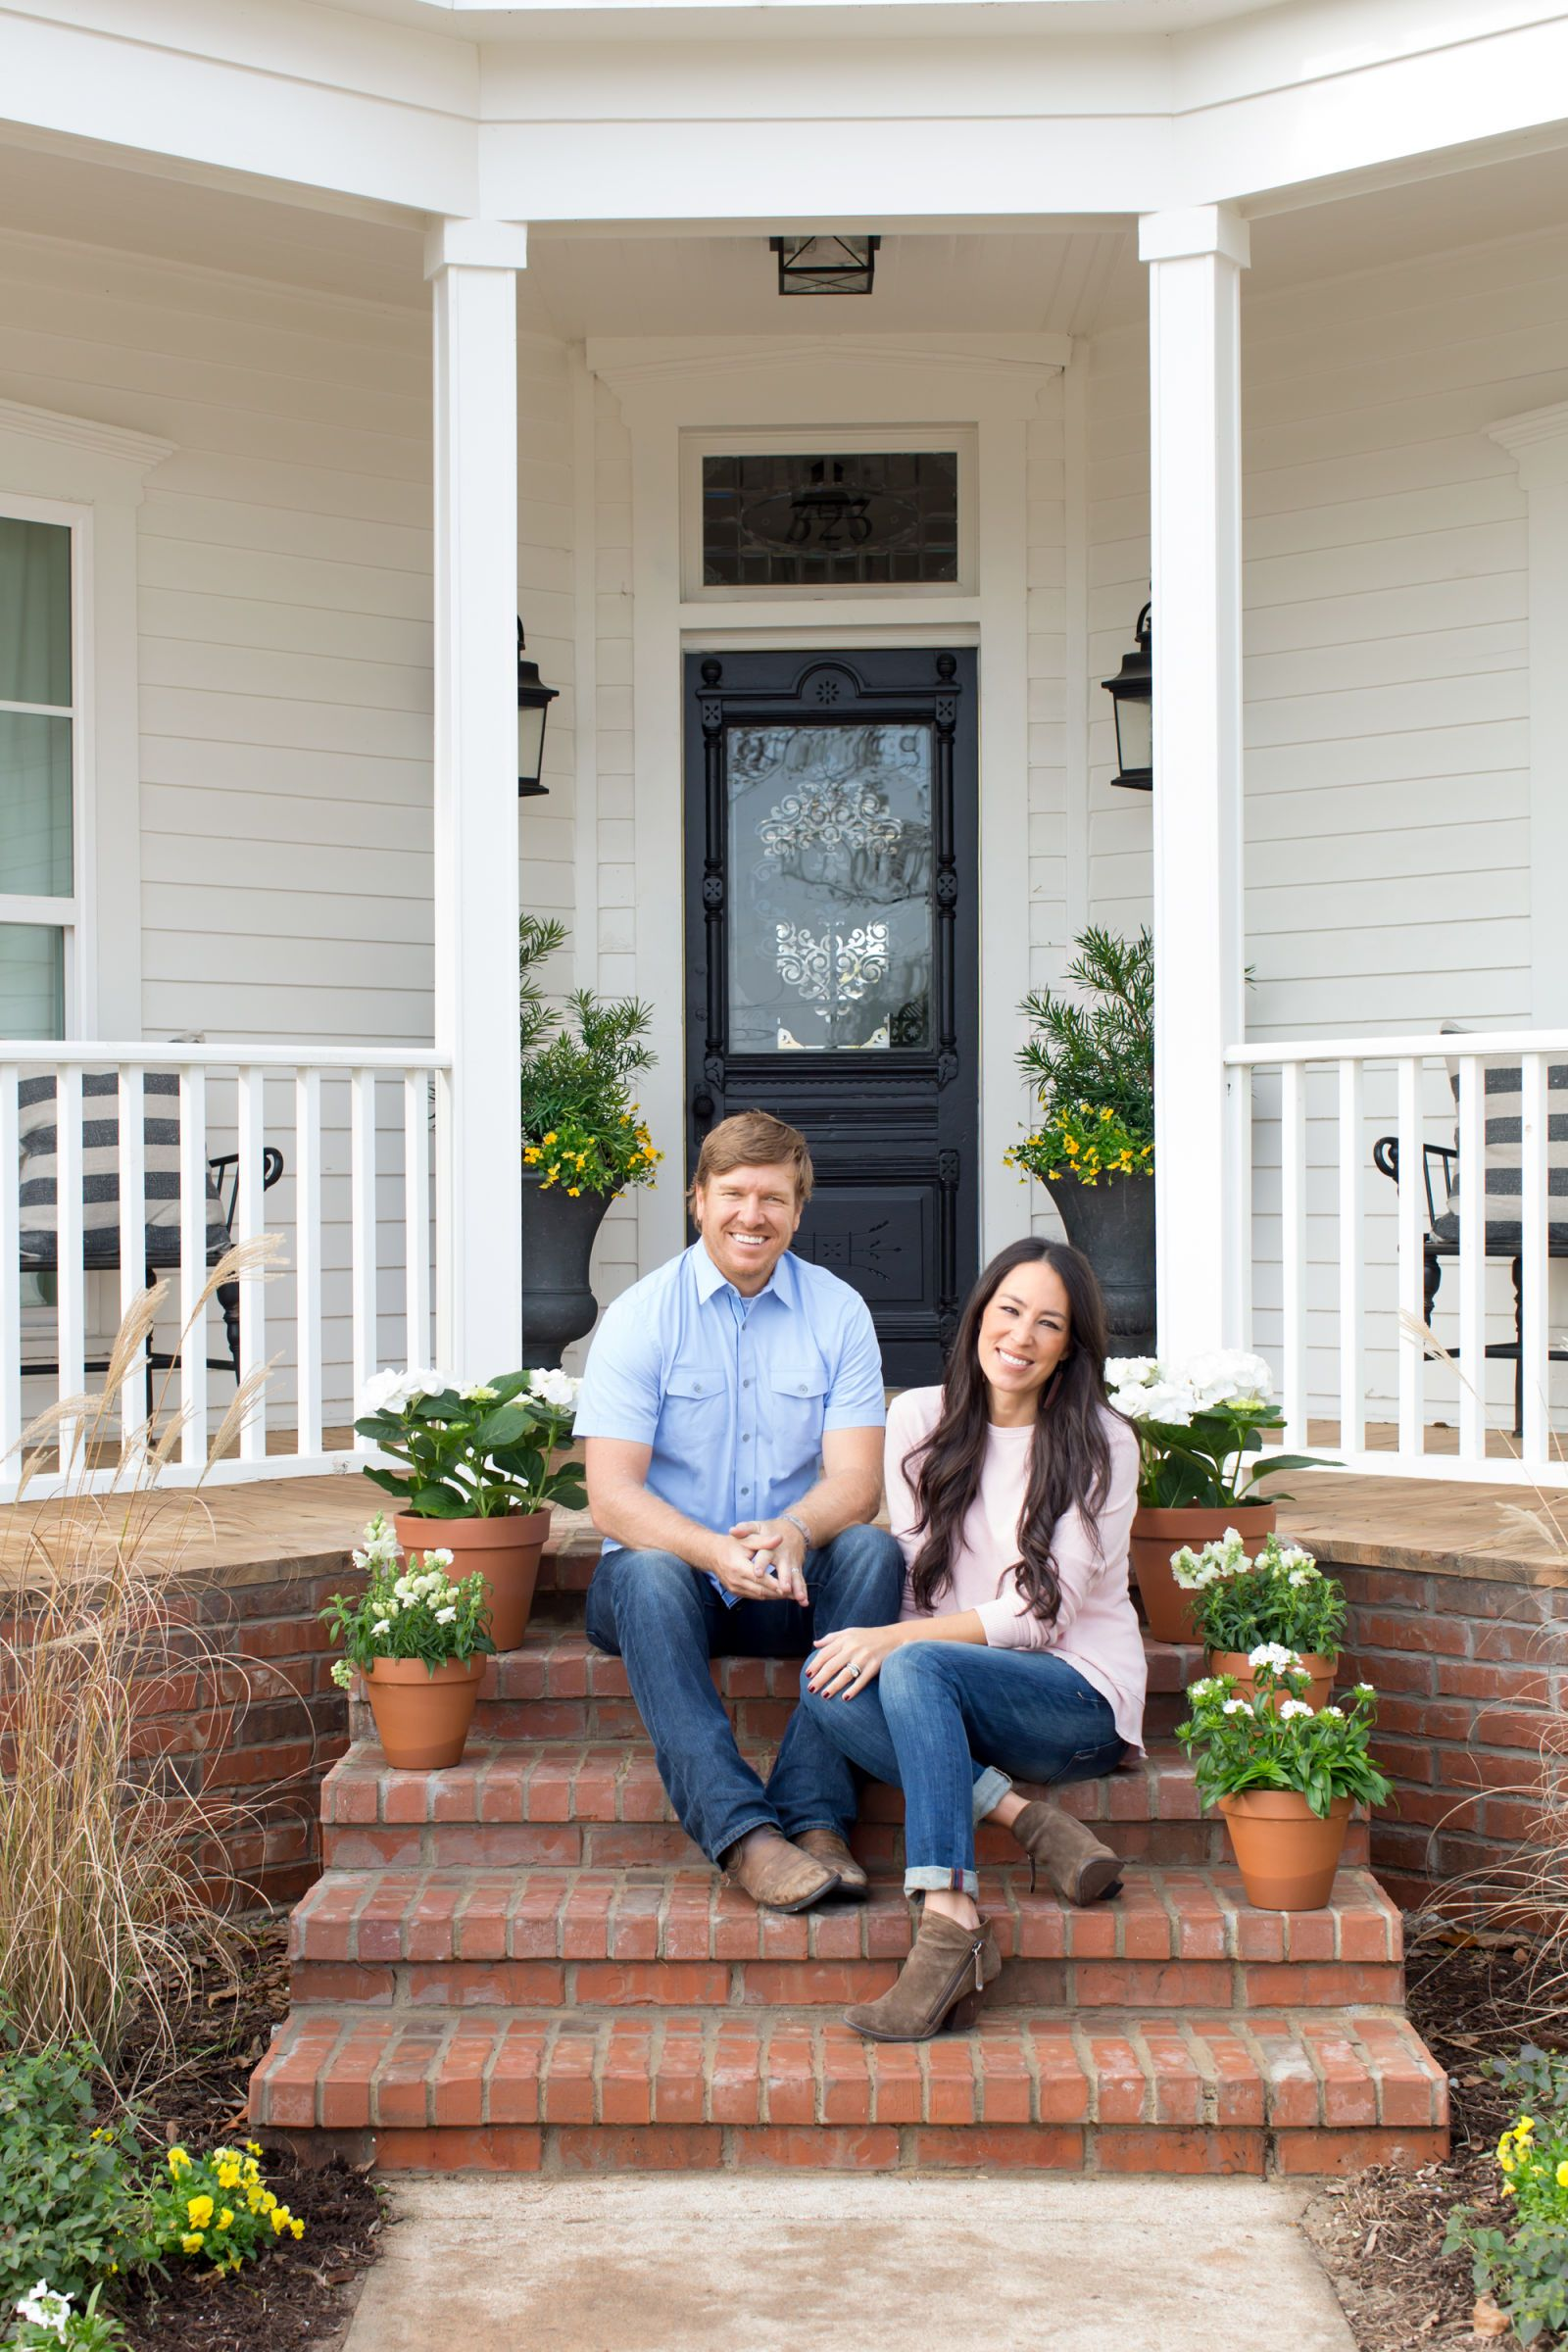 Hgtv S Chip And Joanna Gaines Discuss Their Plans To Purchase A Fixer Upper Of Own Invite Us Inside Magnolia House New Bed Breakfast In